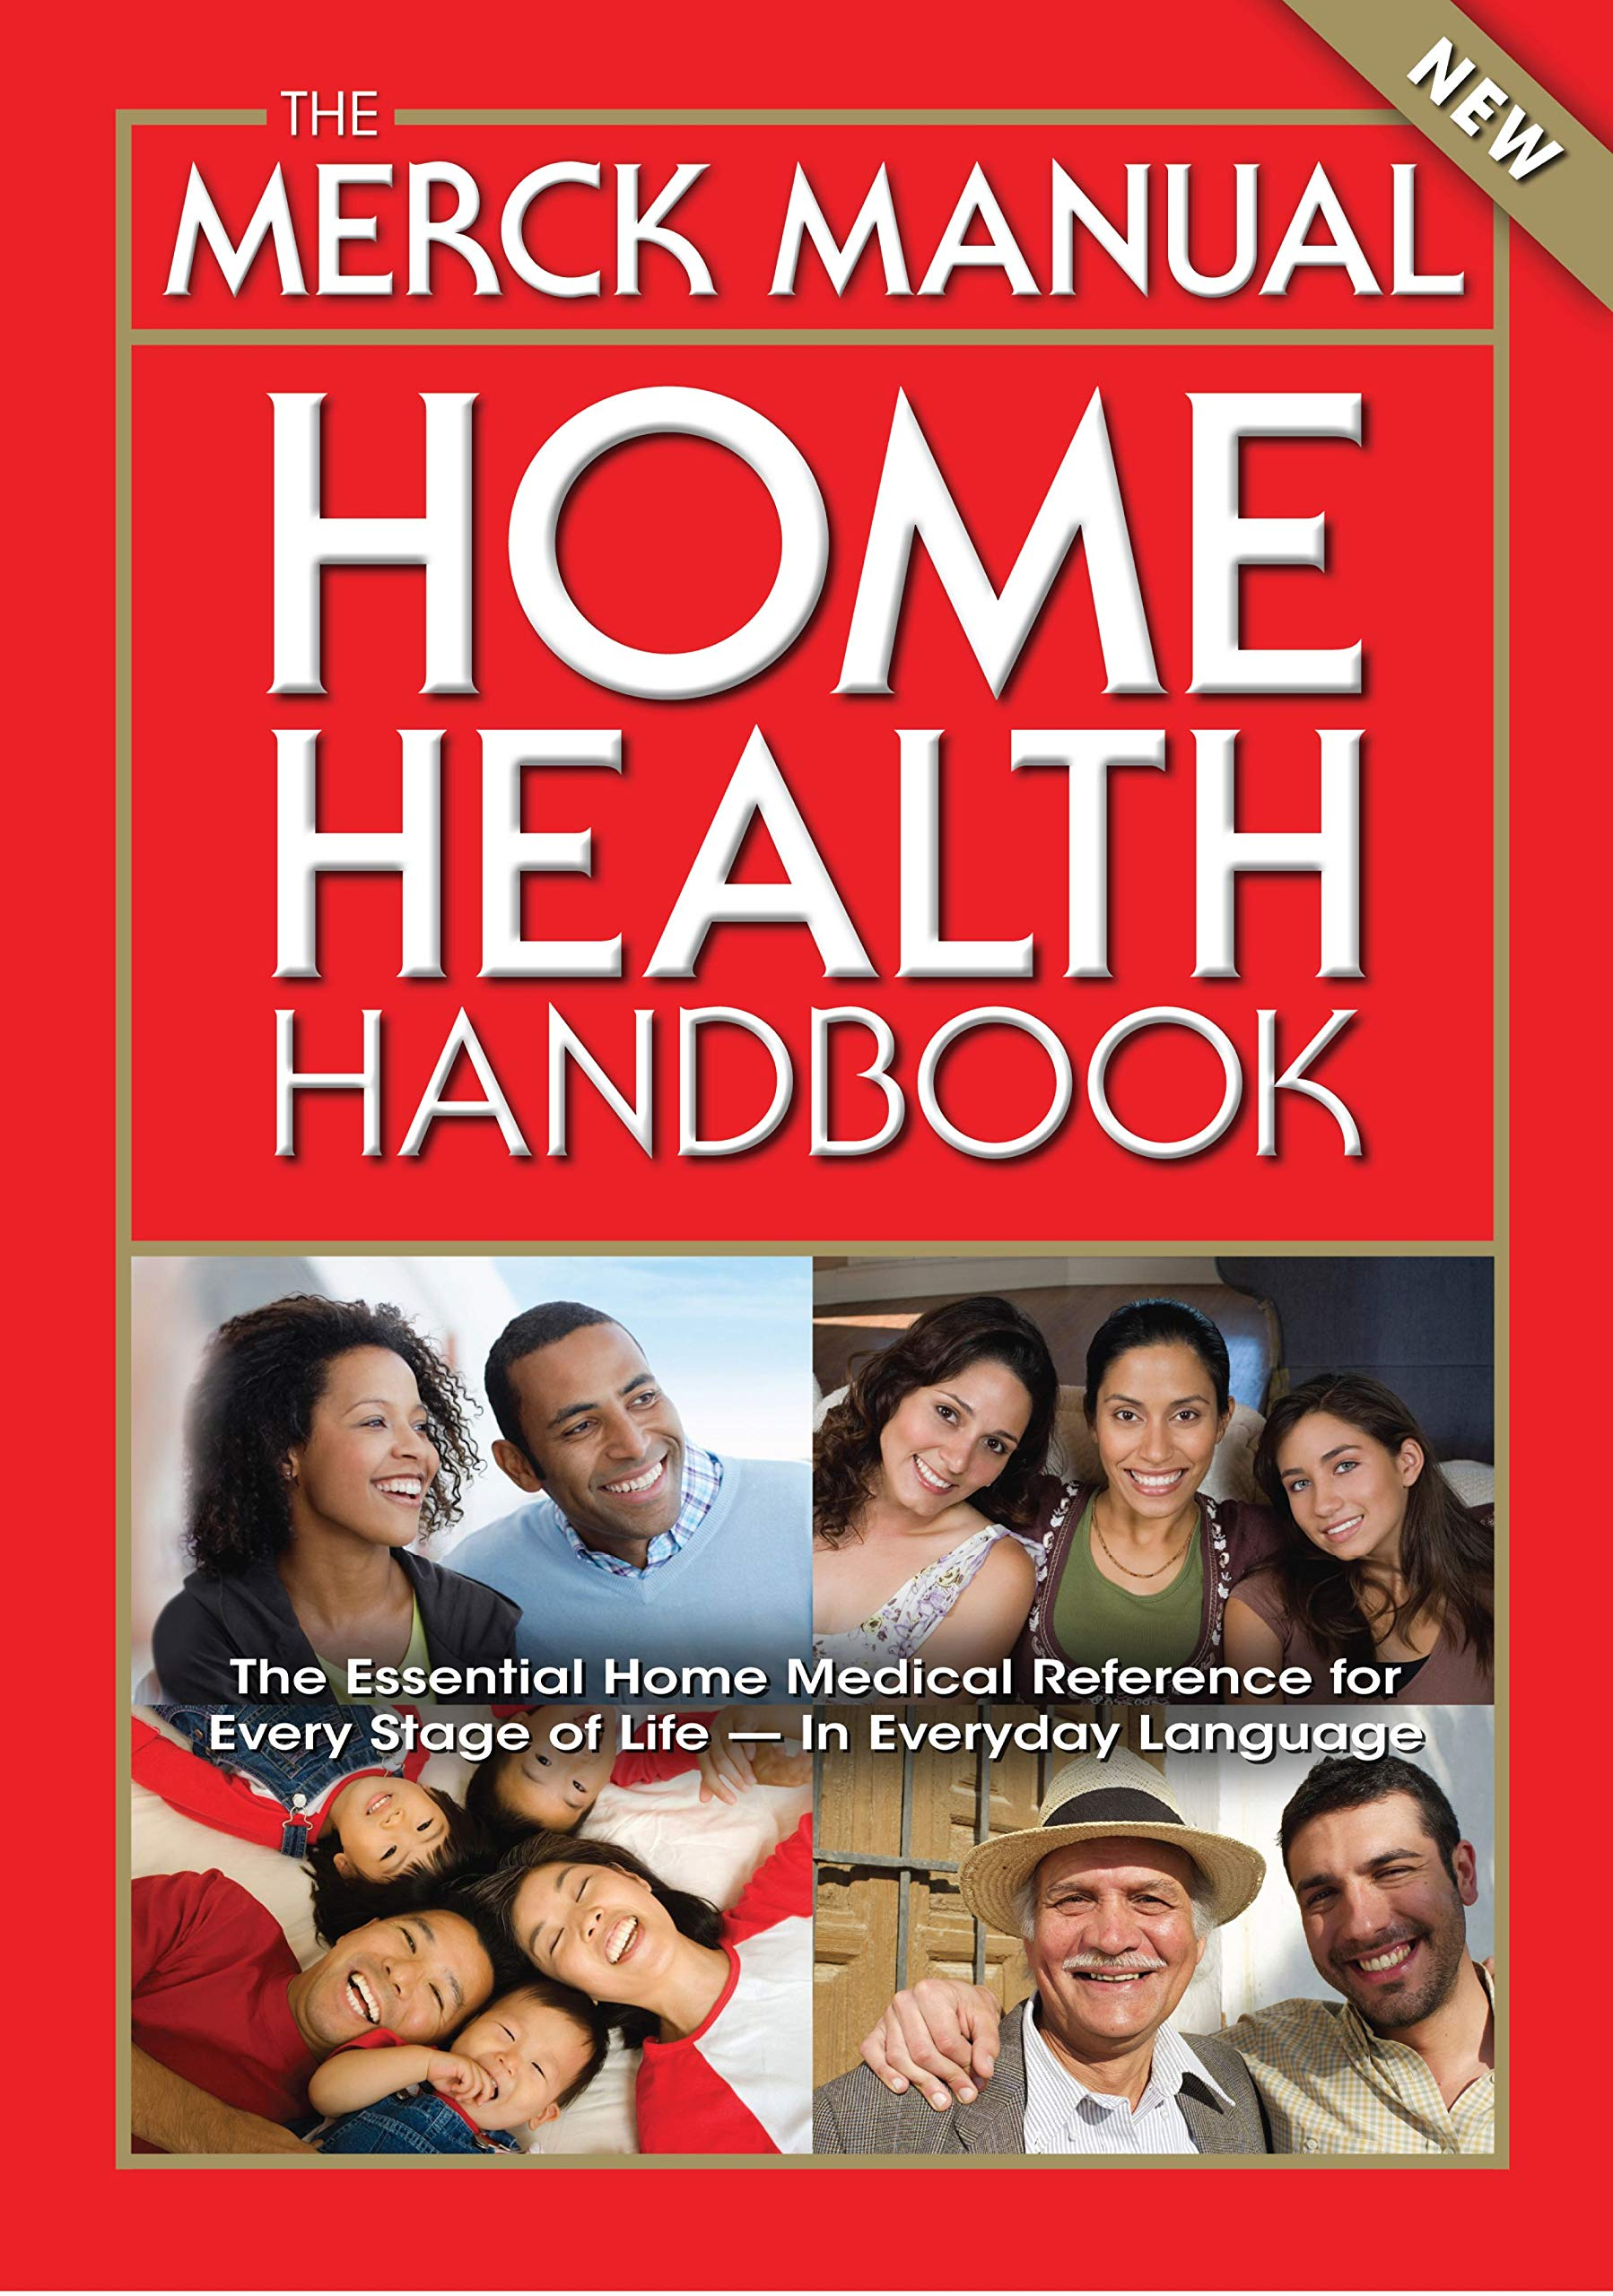 The Merck Manual Home Health Handbook: Third Home Edition: Robert Porter:  9780911910308: Amazon.com: Books